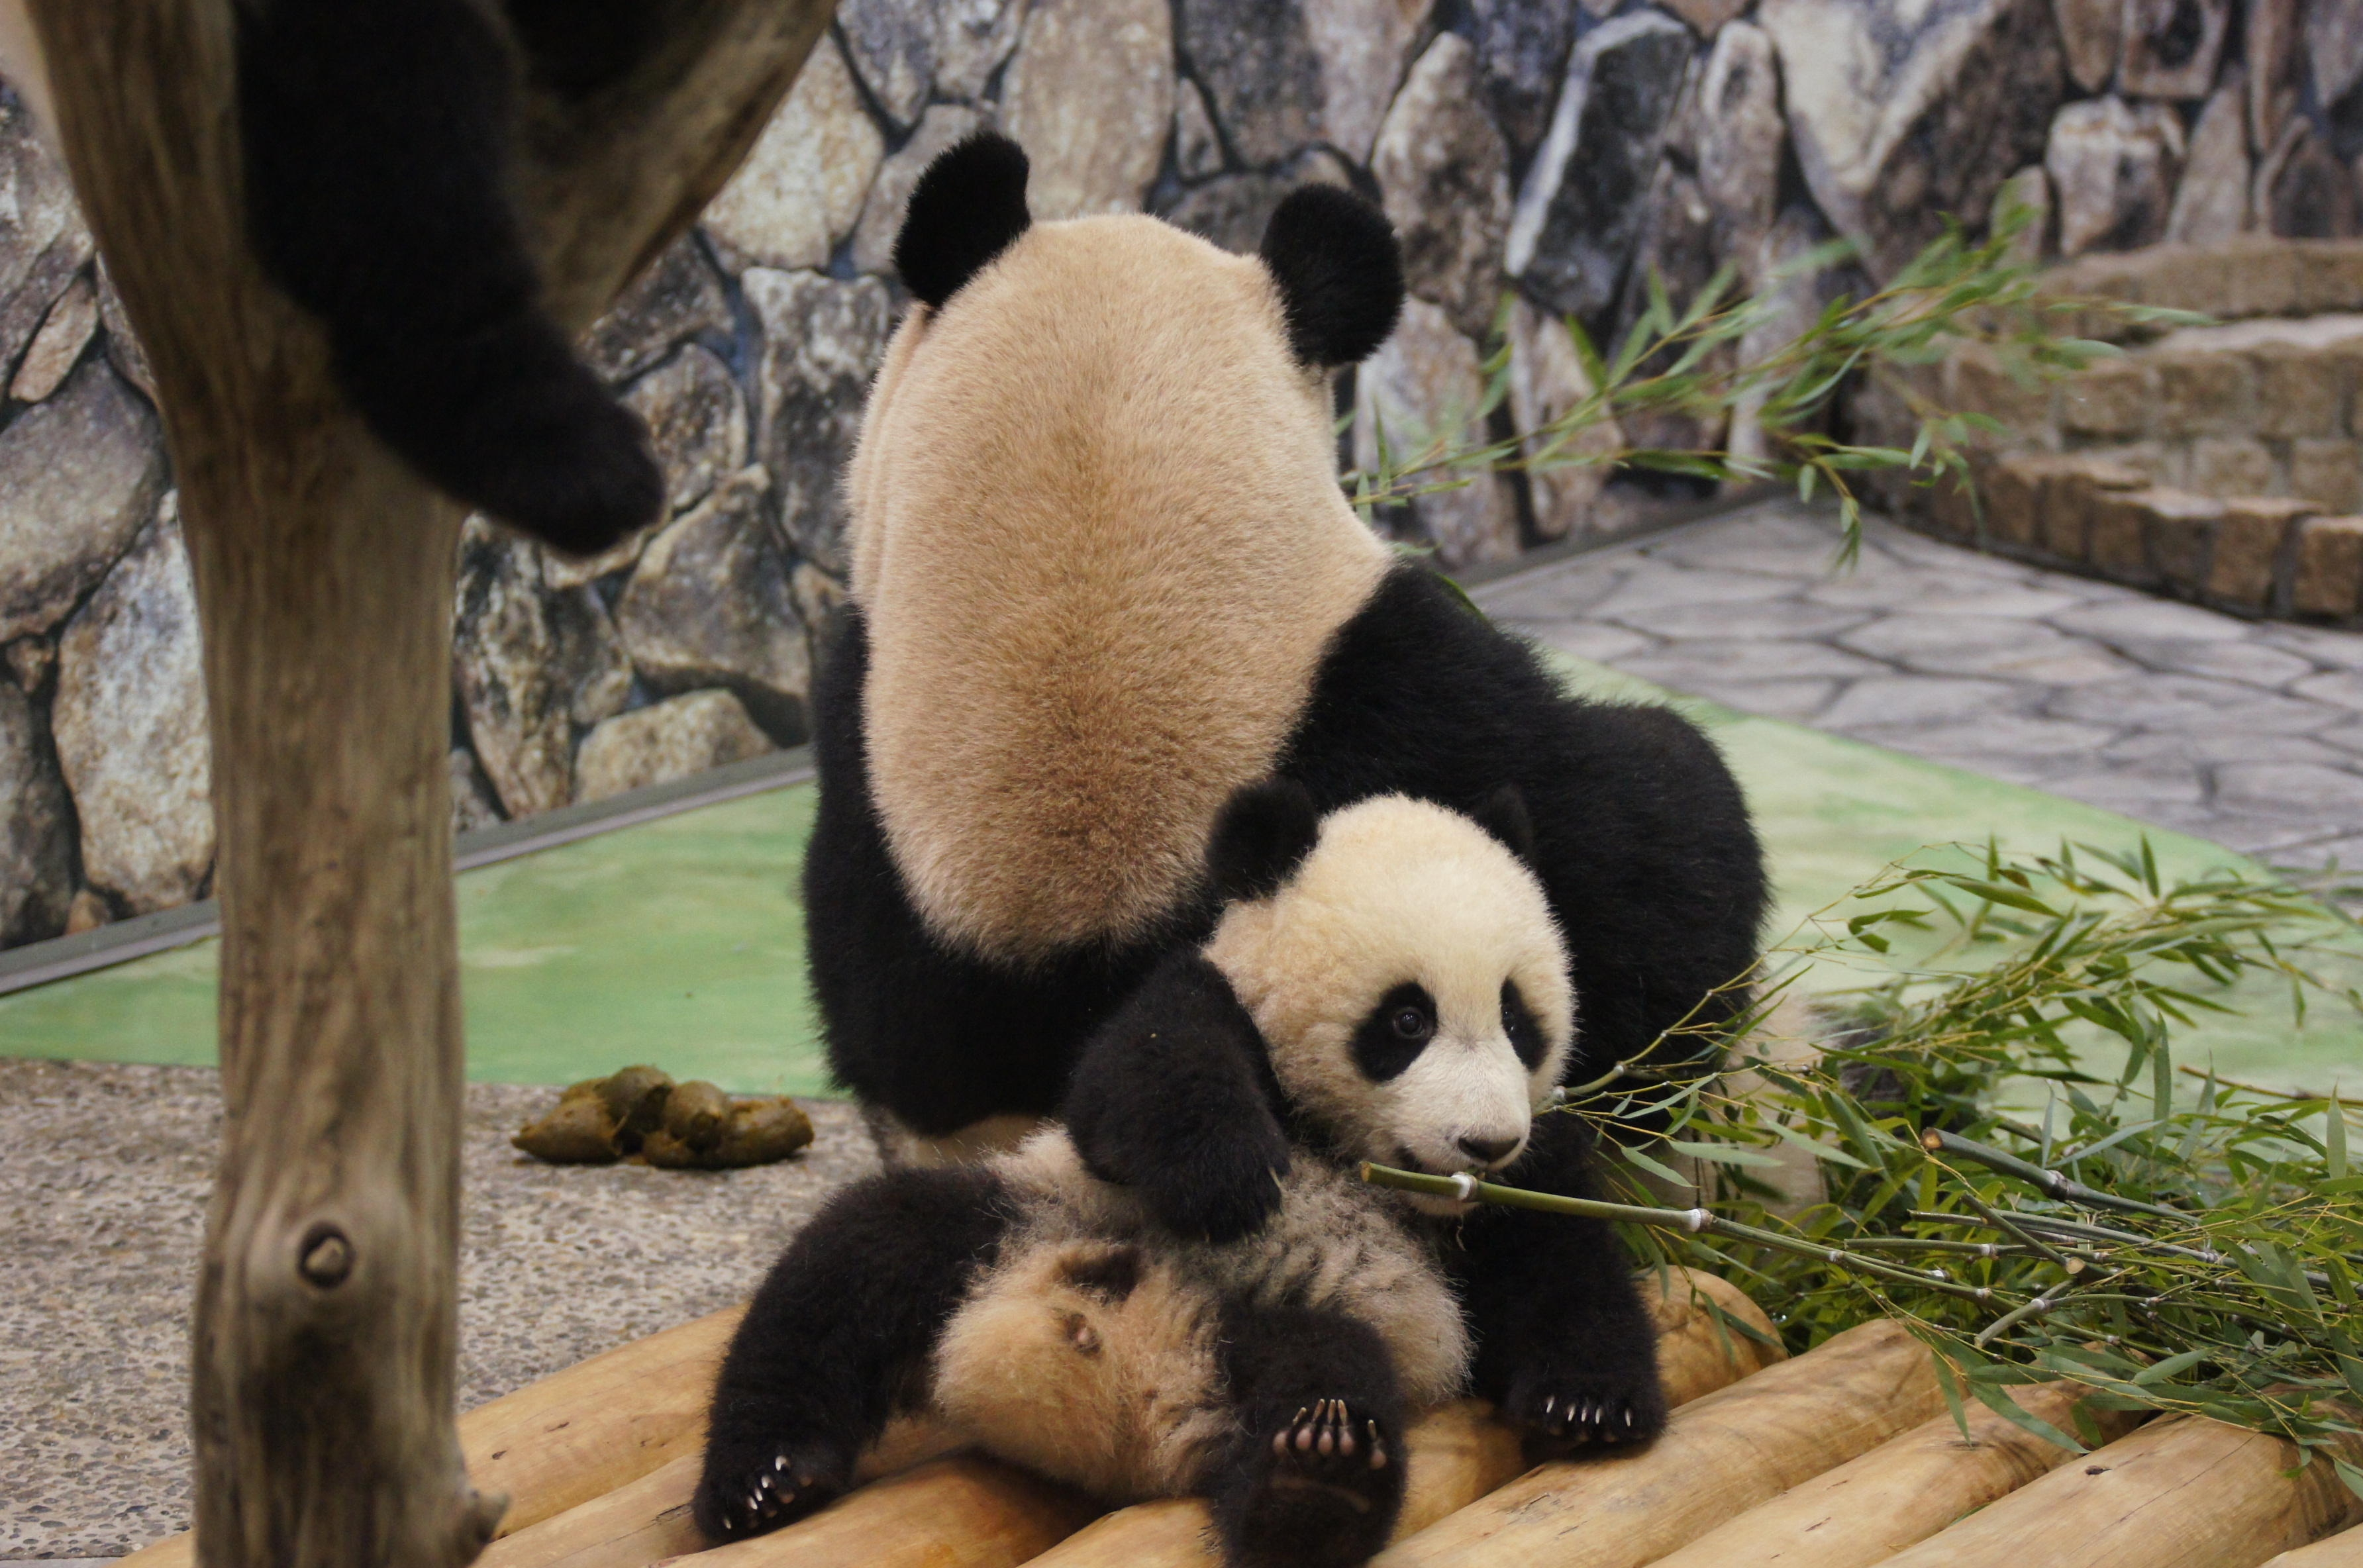 108003 download wallpaper Animals, Grass, To Lie Down, Lie, Relaxation, Rest, Pandas screensavers and pictures for free